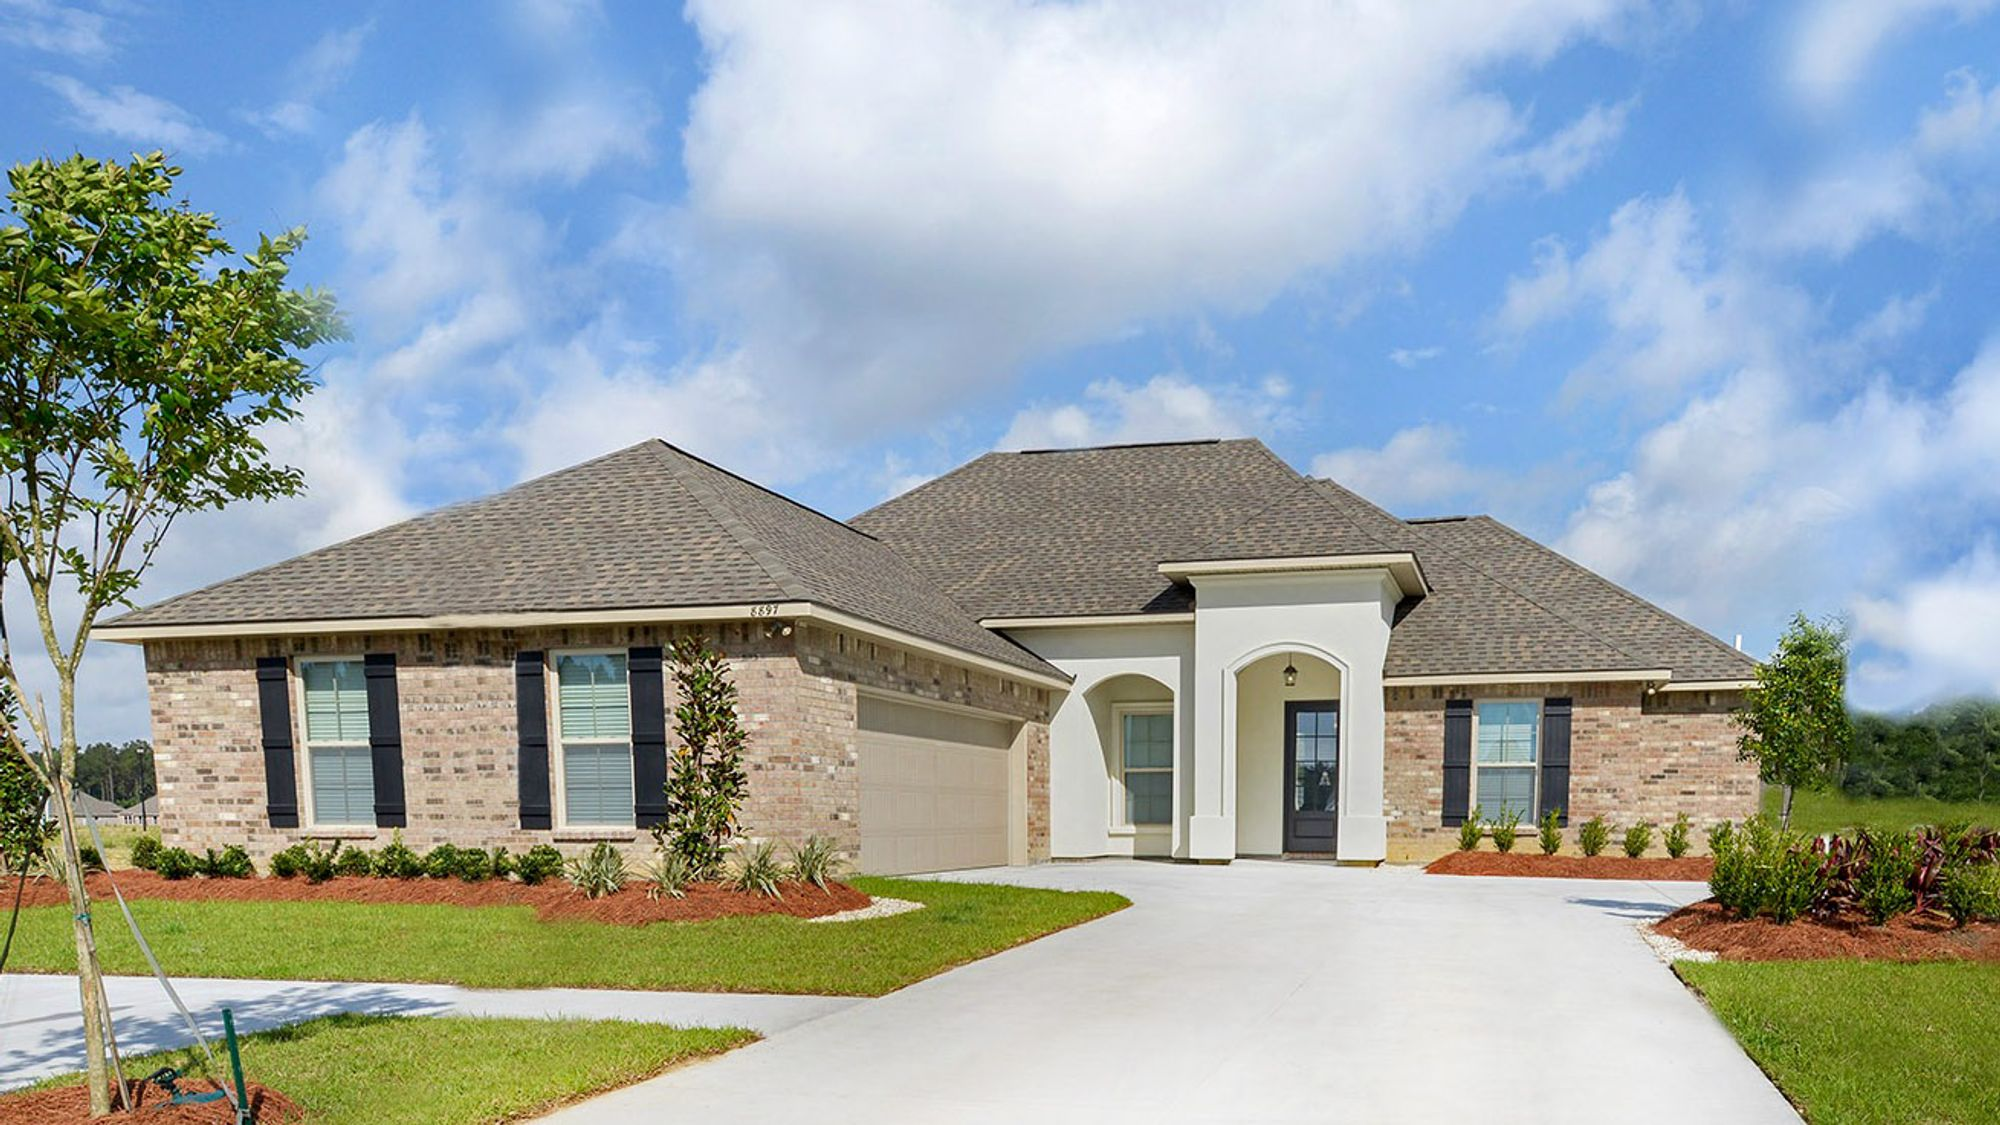 Front of the Model Home - Nickens Lake- DSLD Homes Denham Springs